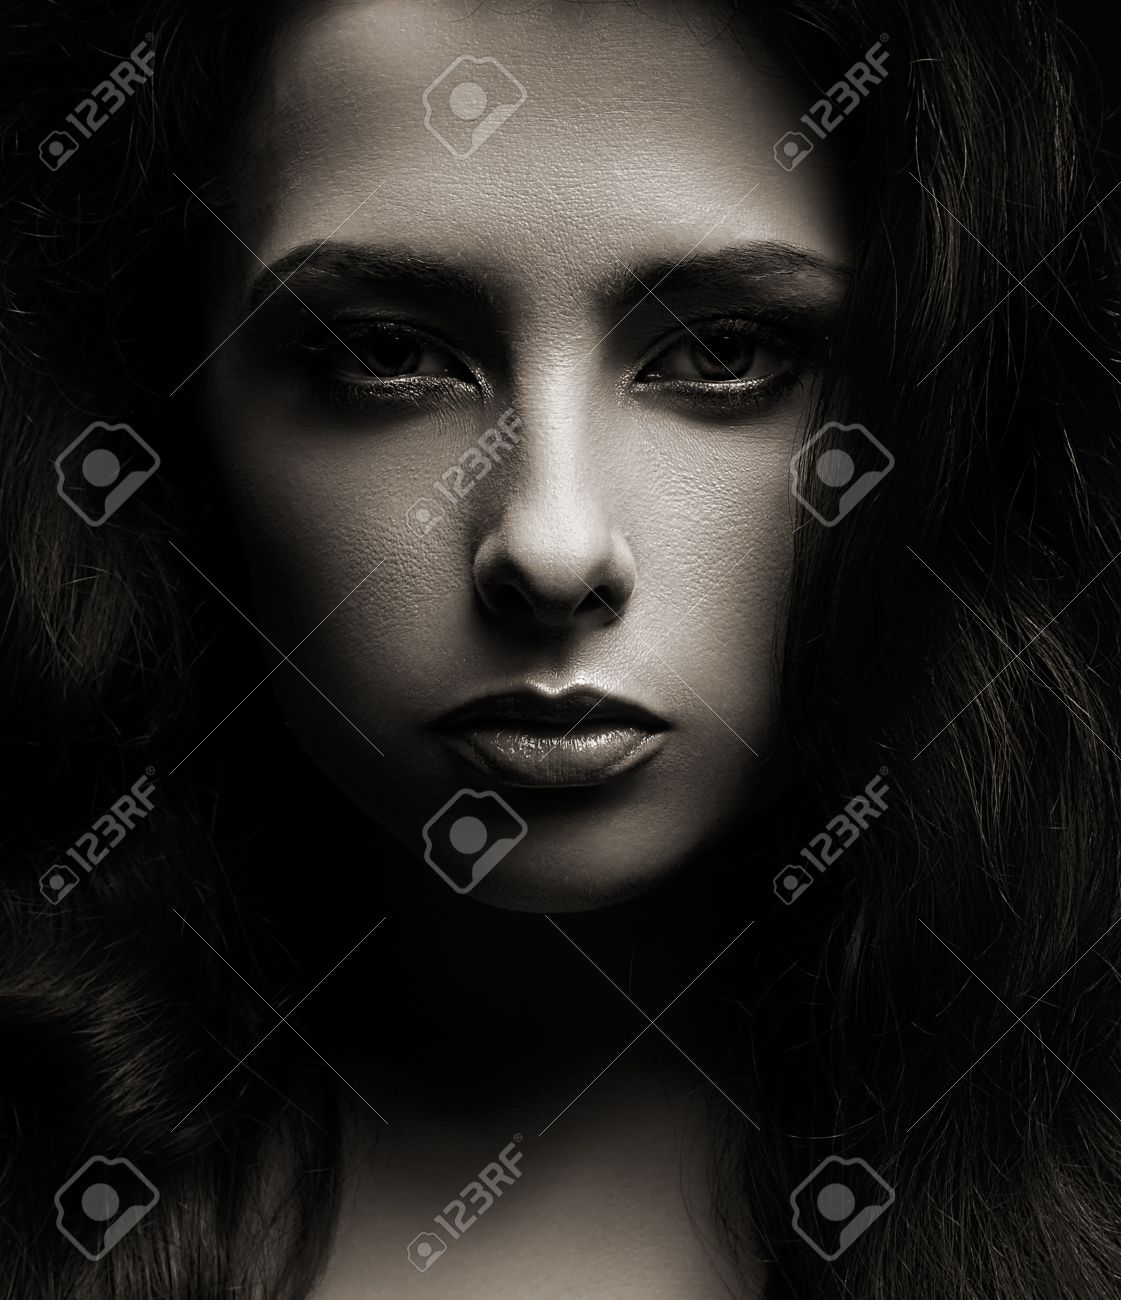 Closeup portrait of beautiful woman face on dark shadows background stock photo 28880750